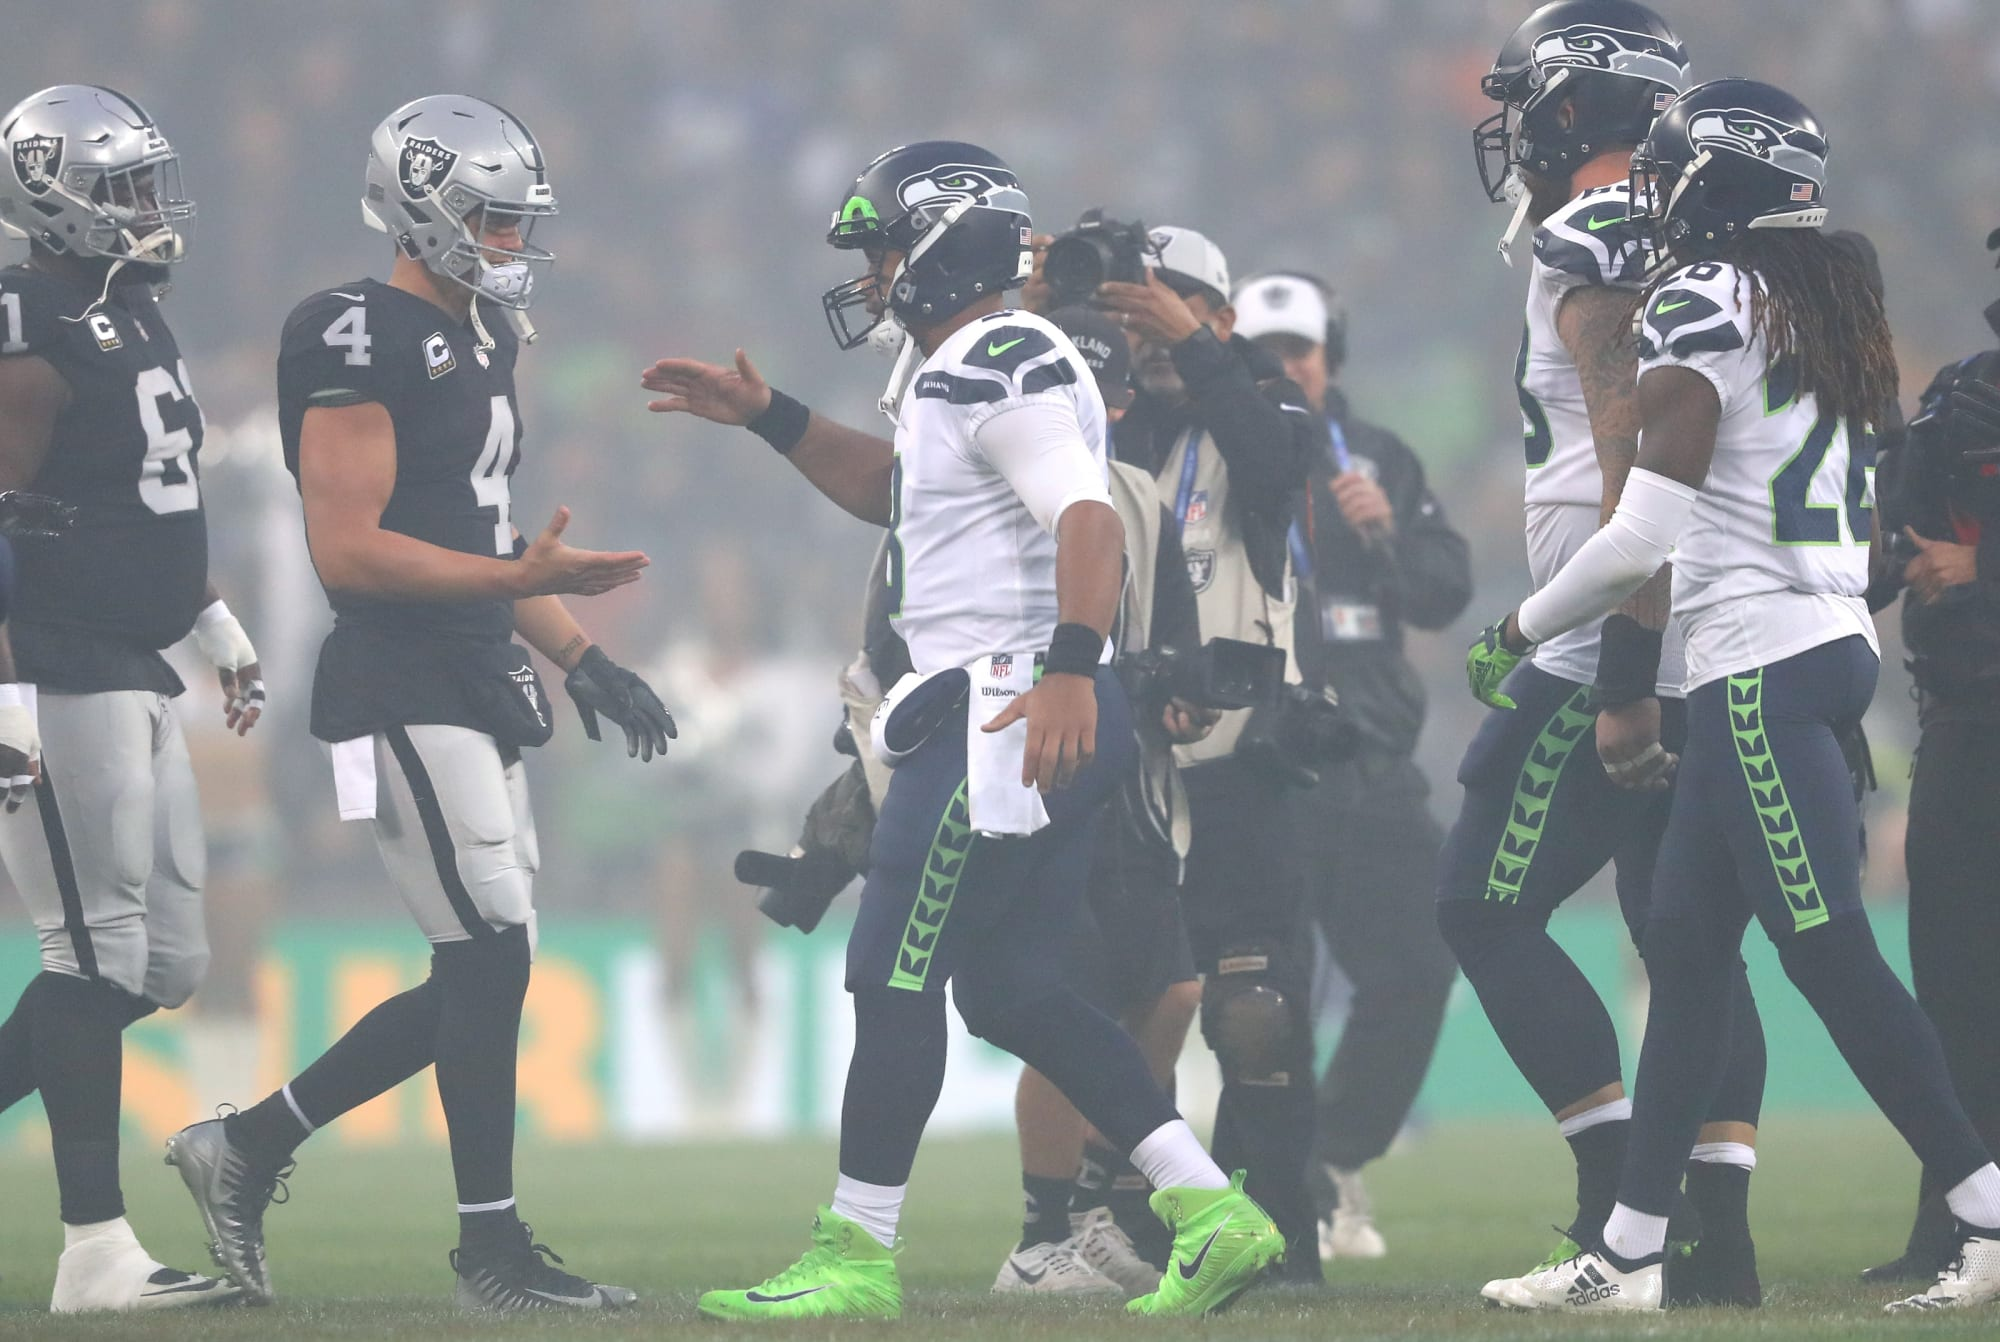 David Carr weirdly alters article suggesting Raiders should exchange for Russell Wilson thumbnail